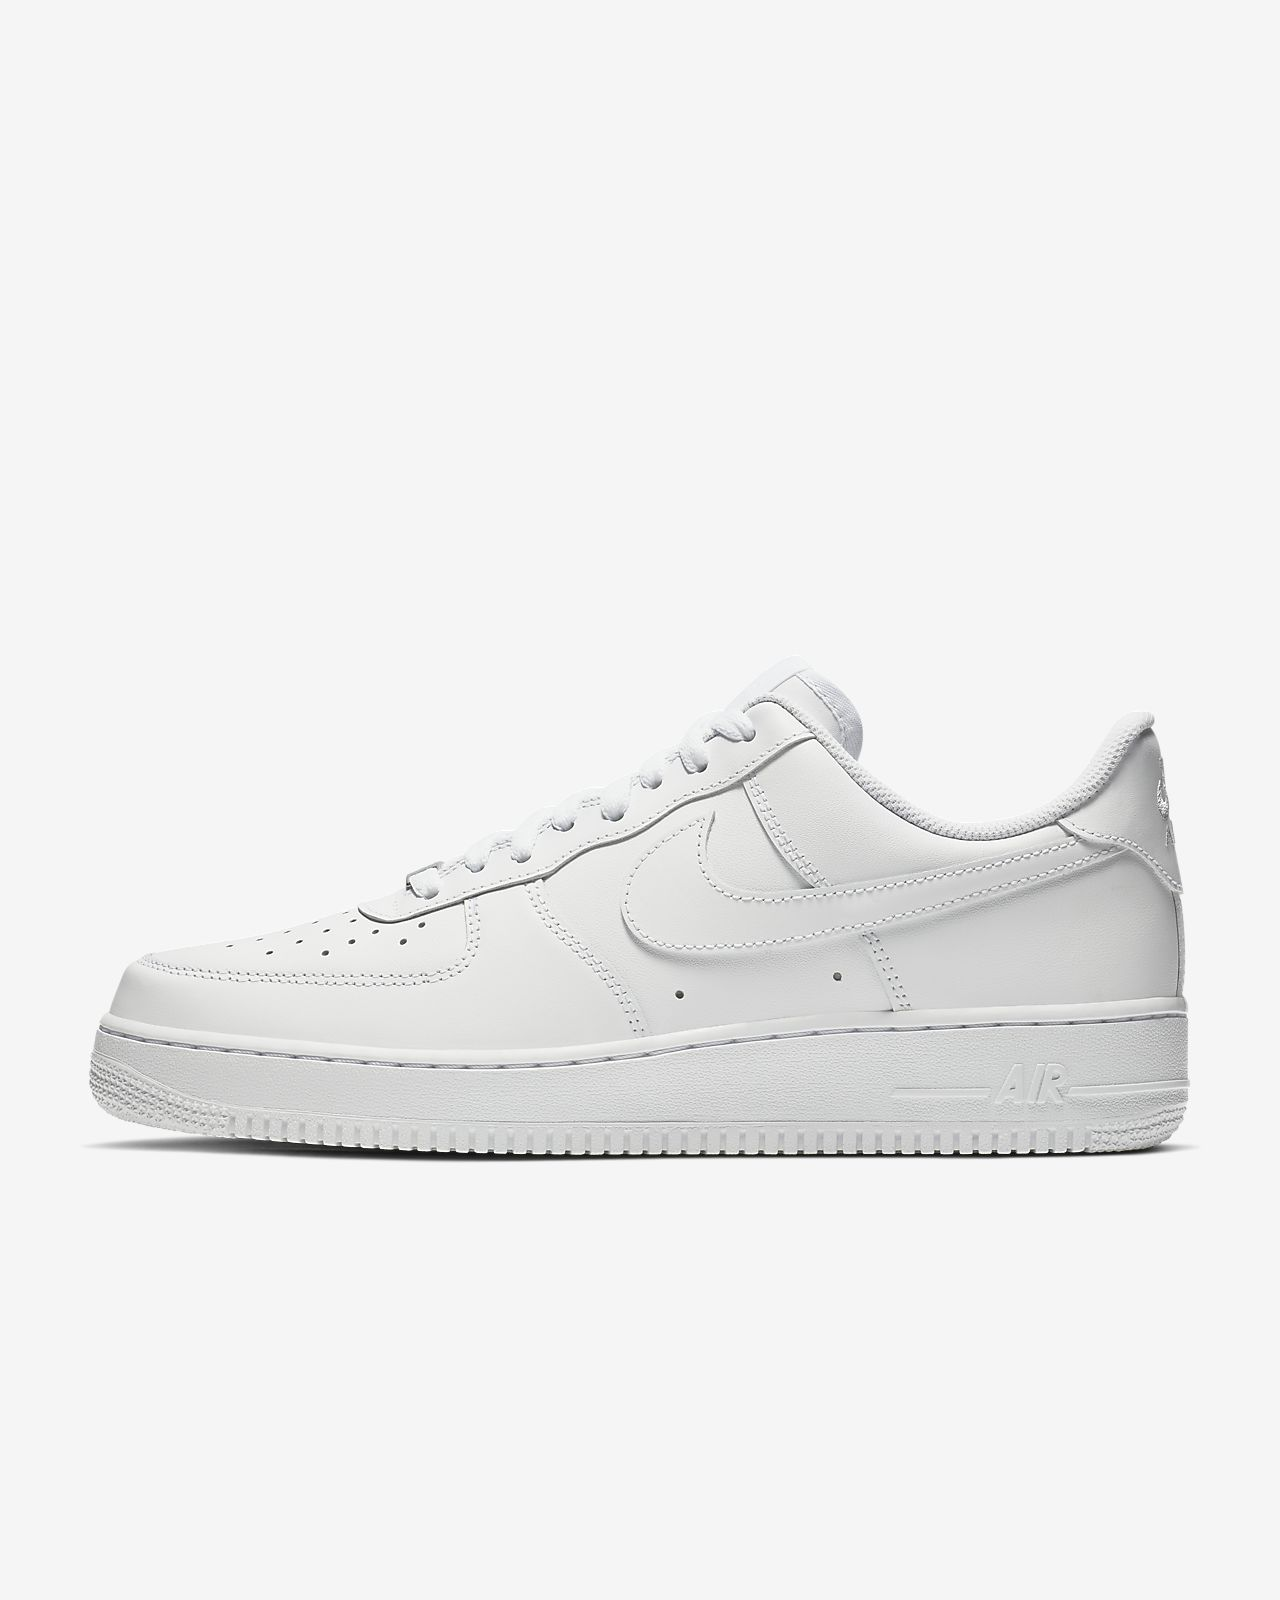 buying now buying now beauty Nike Air Force 1 '07 Triple White Men's Shoe